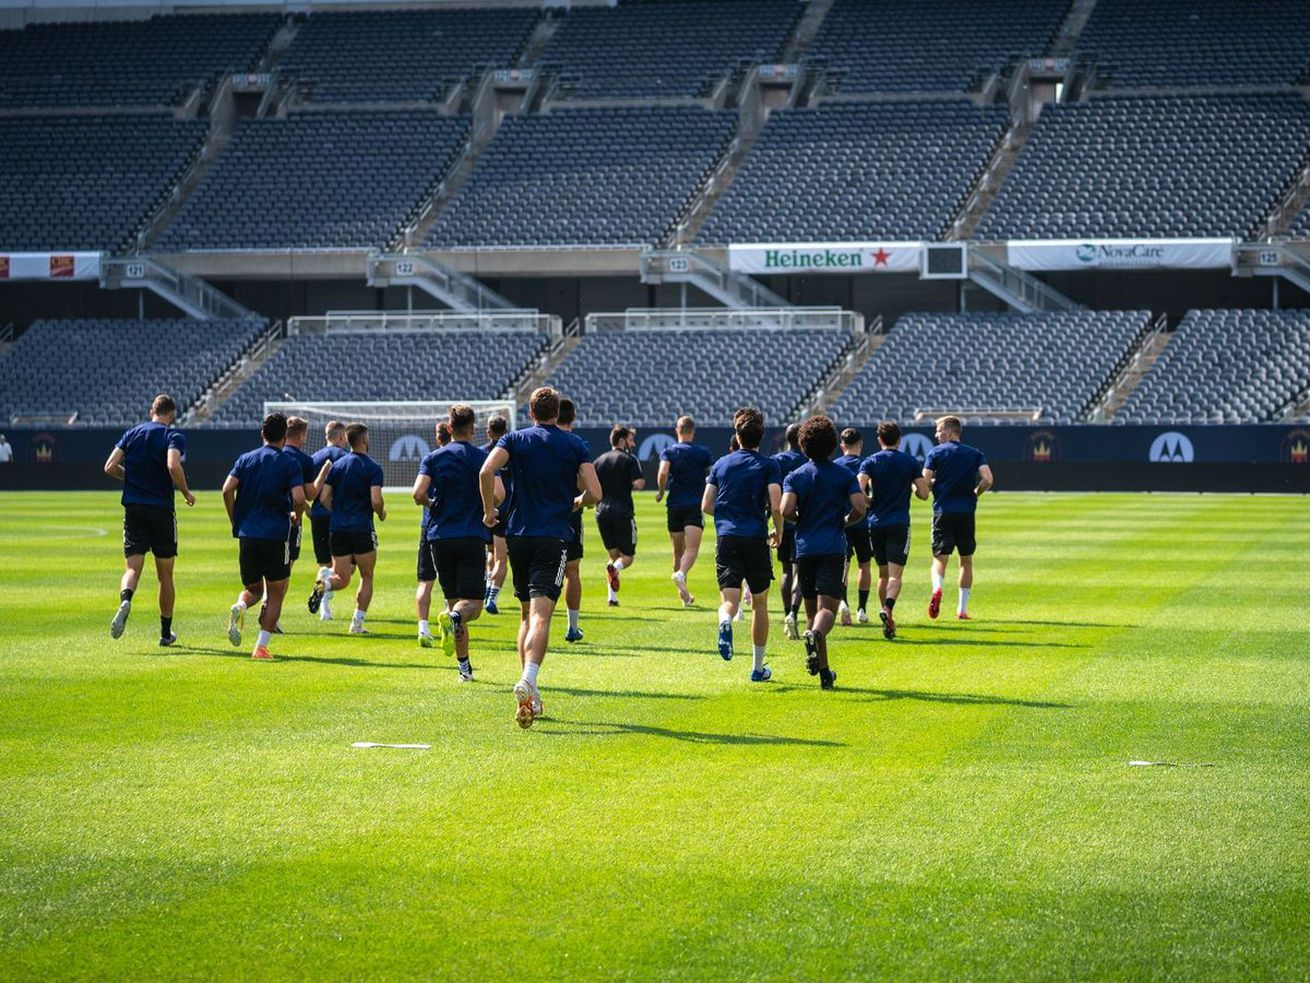 Five months late and not how they envisioned, Fire set for home opener